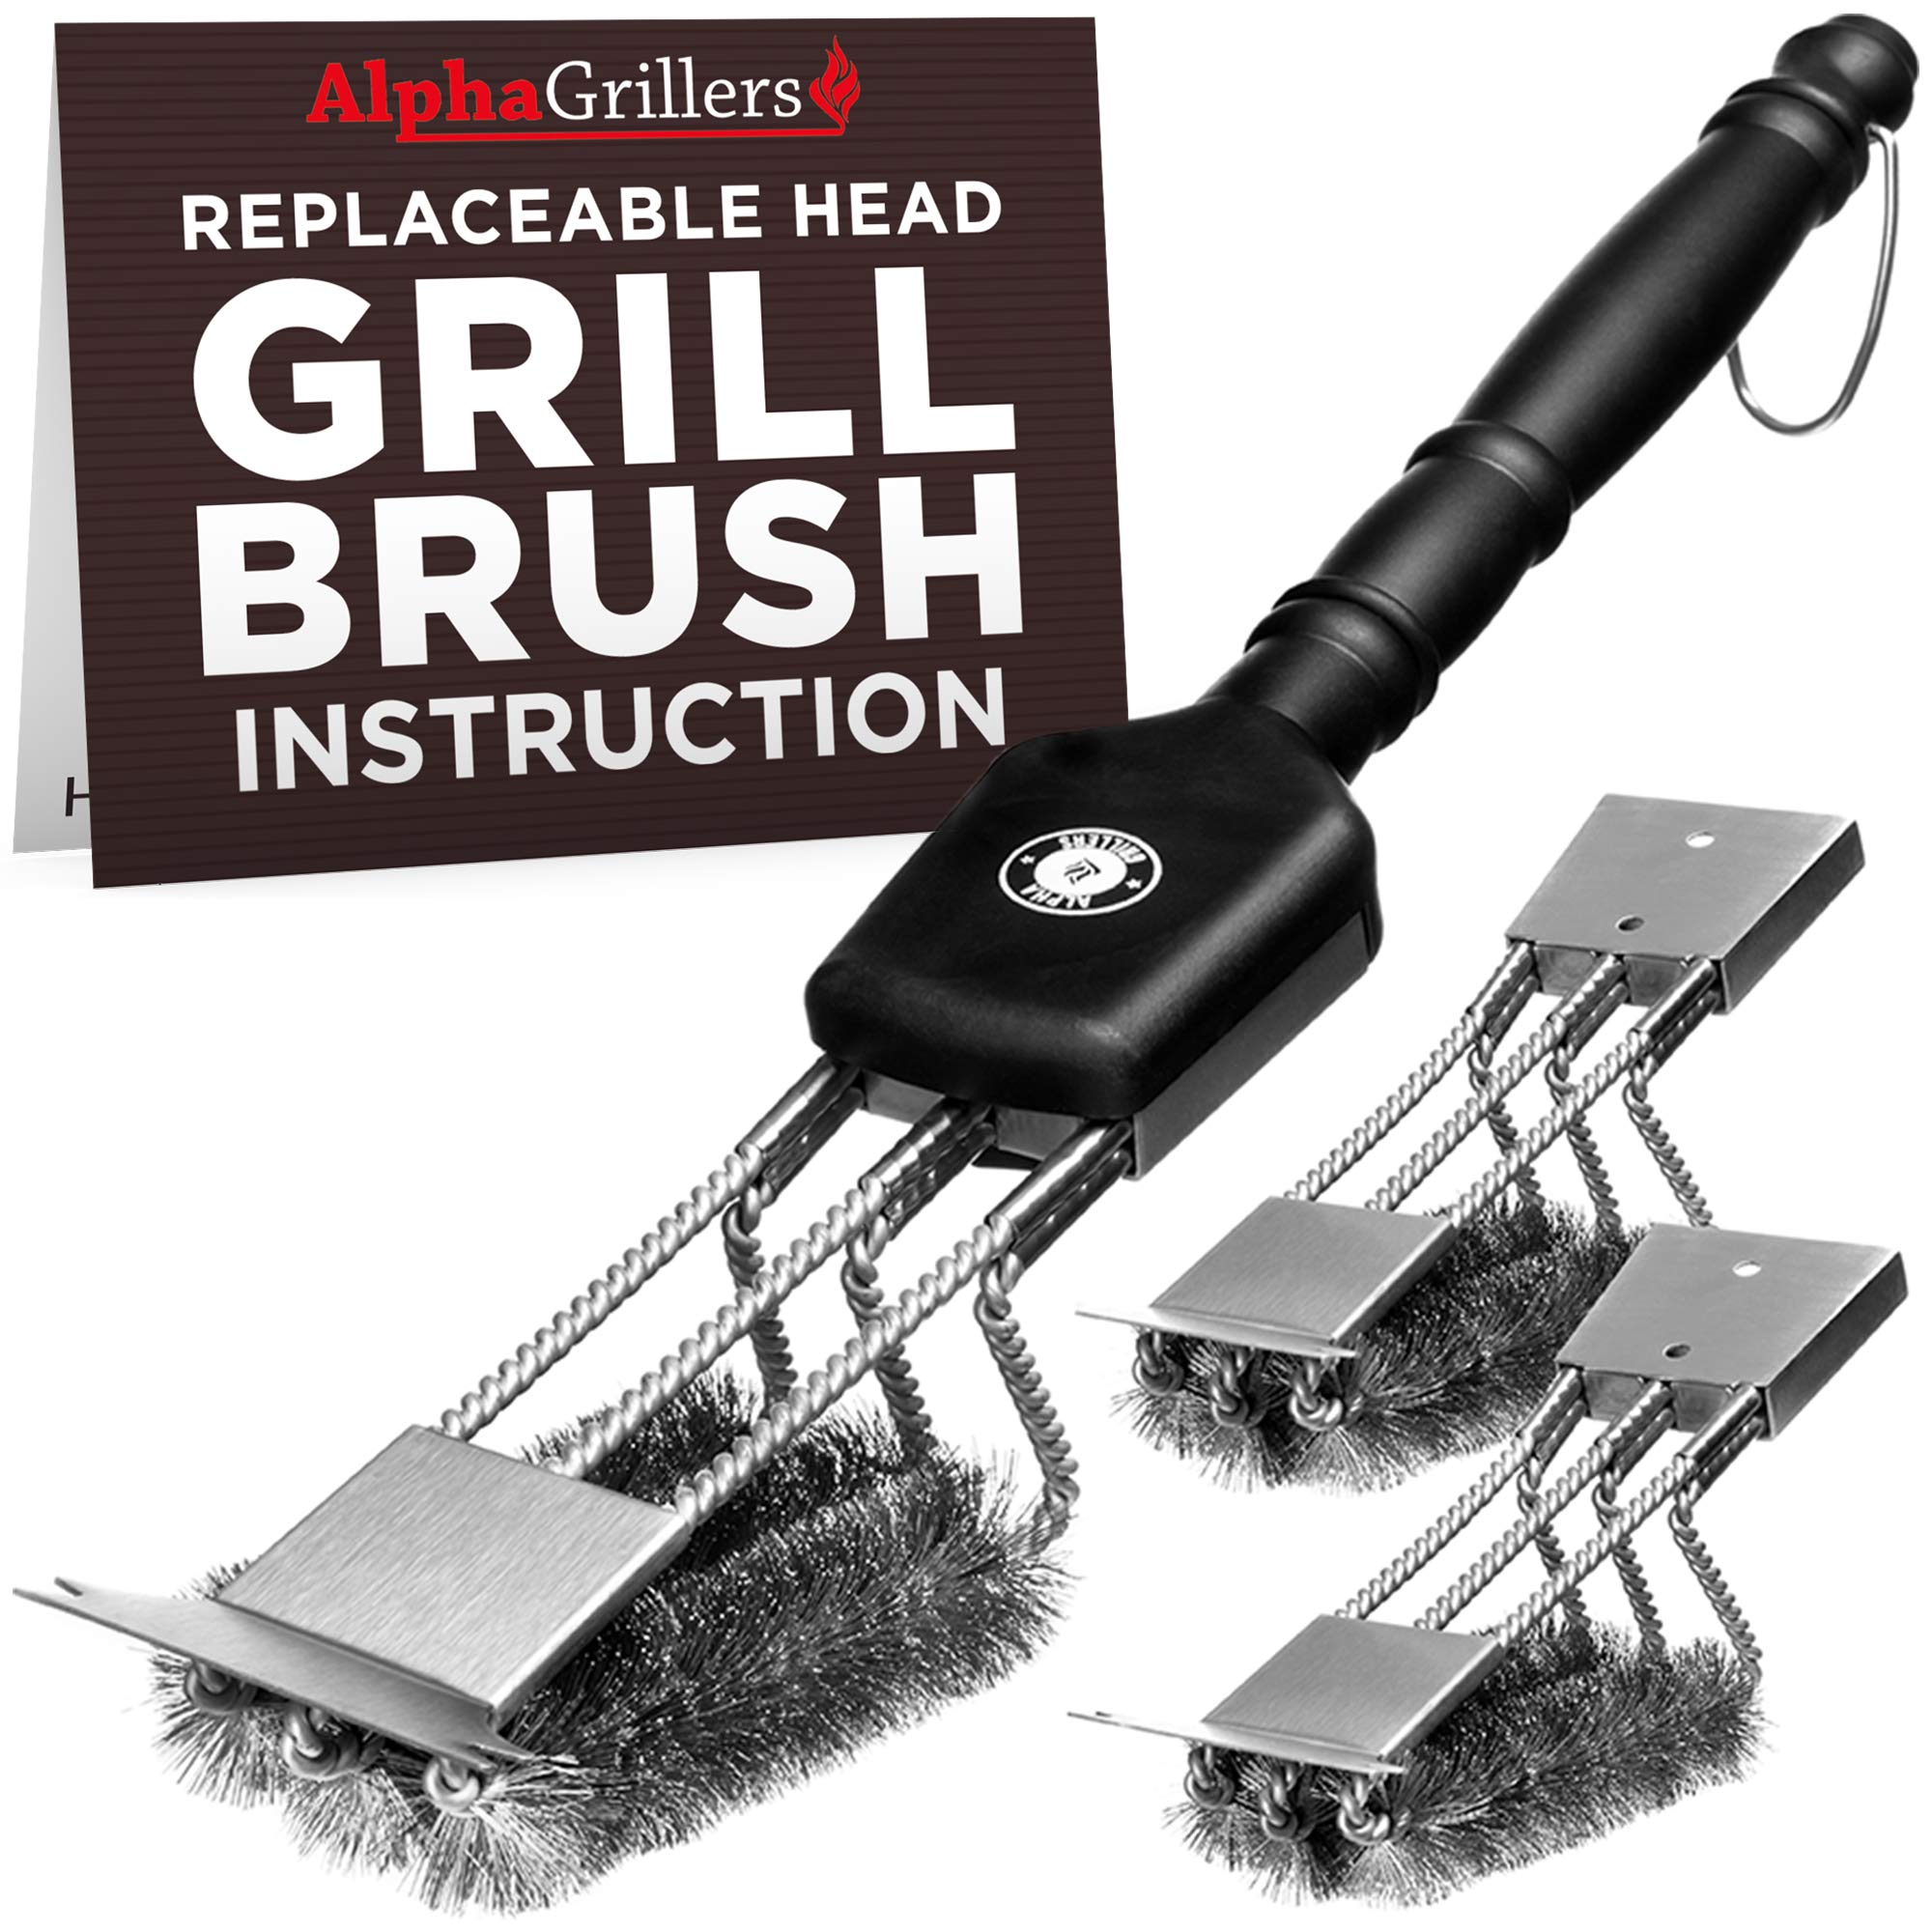 Alpha Grillers Grill Brush & Scraper with 3 Replaceable Heads | Best BBQ Cleaner. Perfect Tools for All Grill Types | Stainless Steel Wire Bristles and Stiff 18 Inch Handle. Ideal Barbecue Accessories by Alpha Grillers